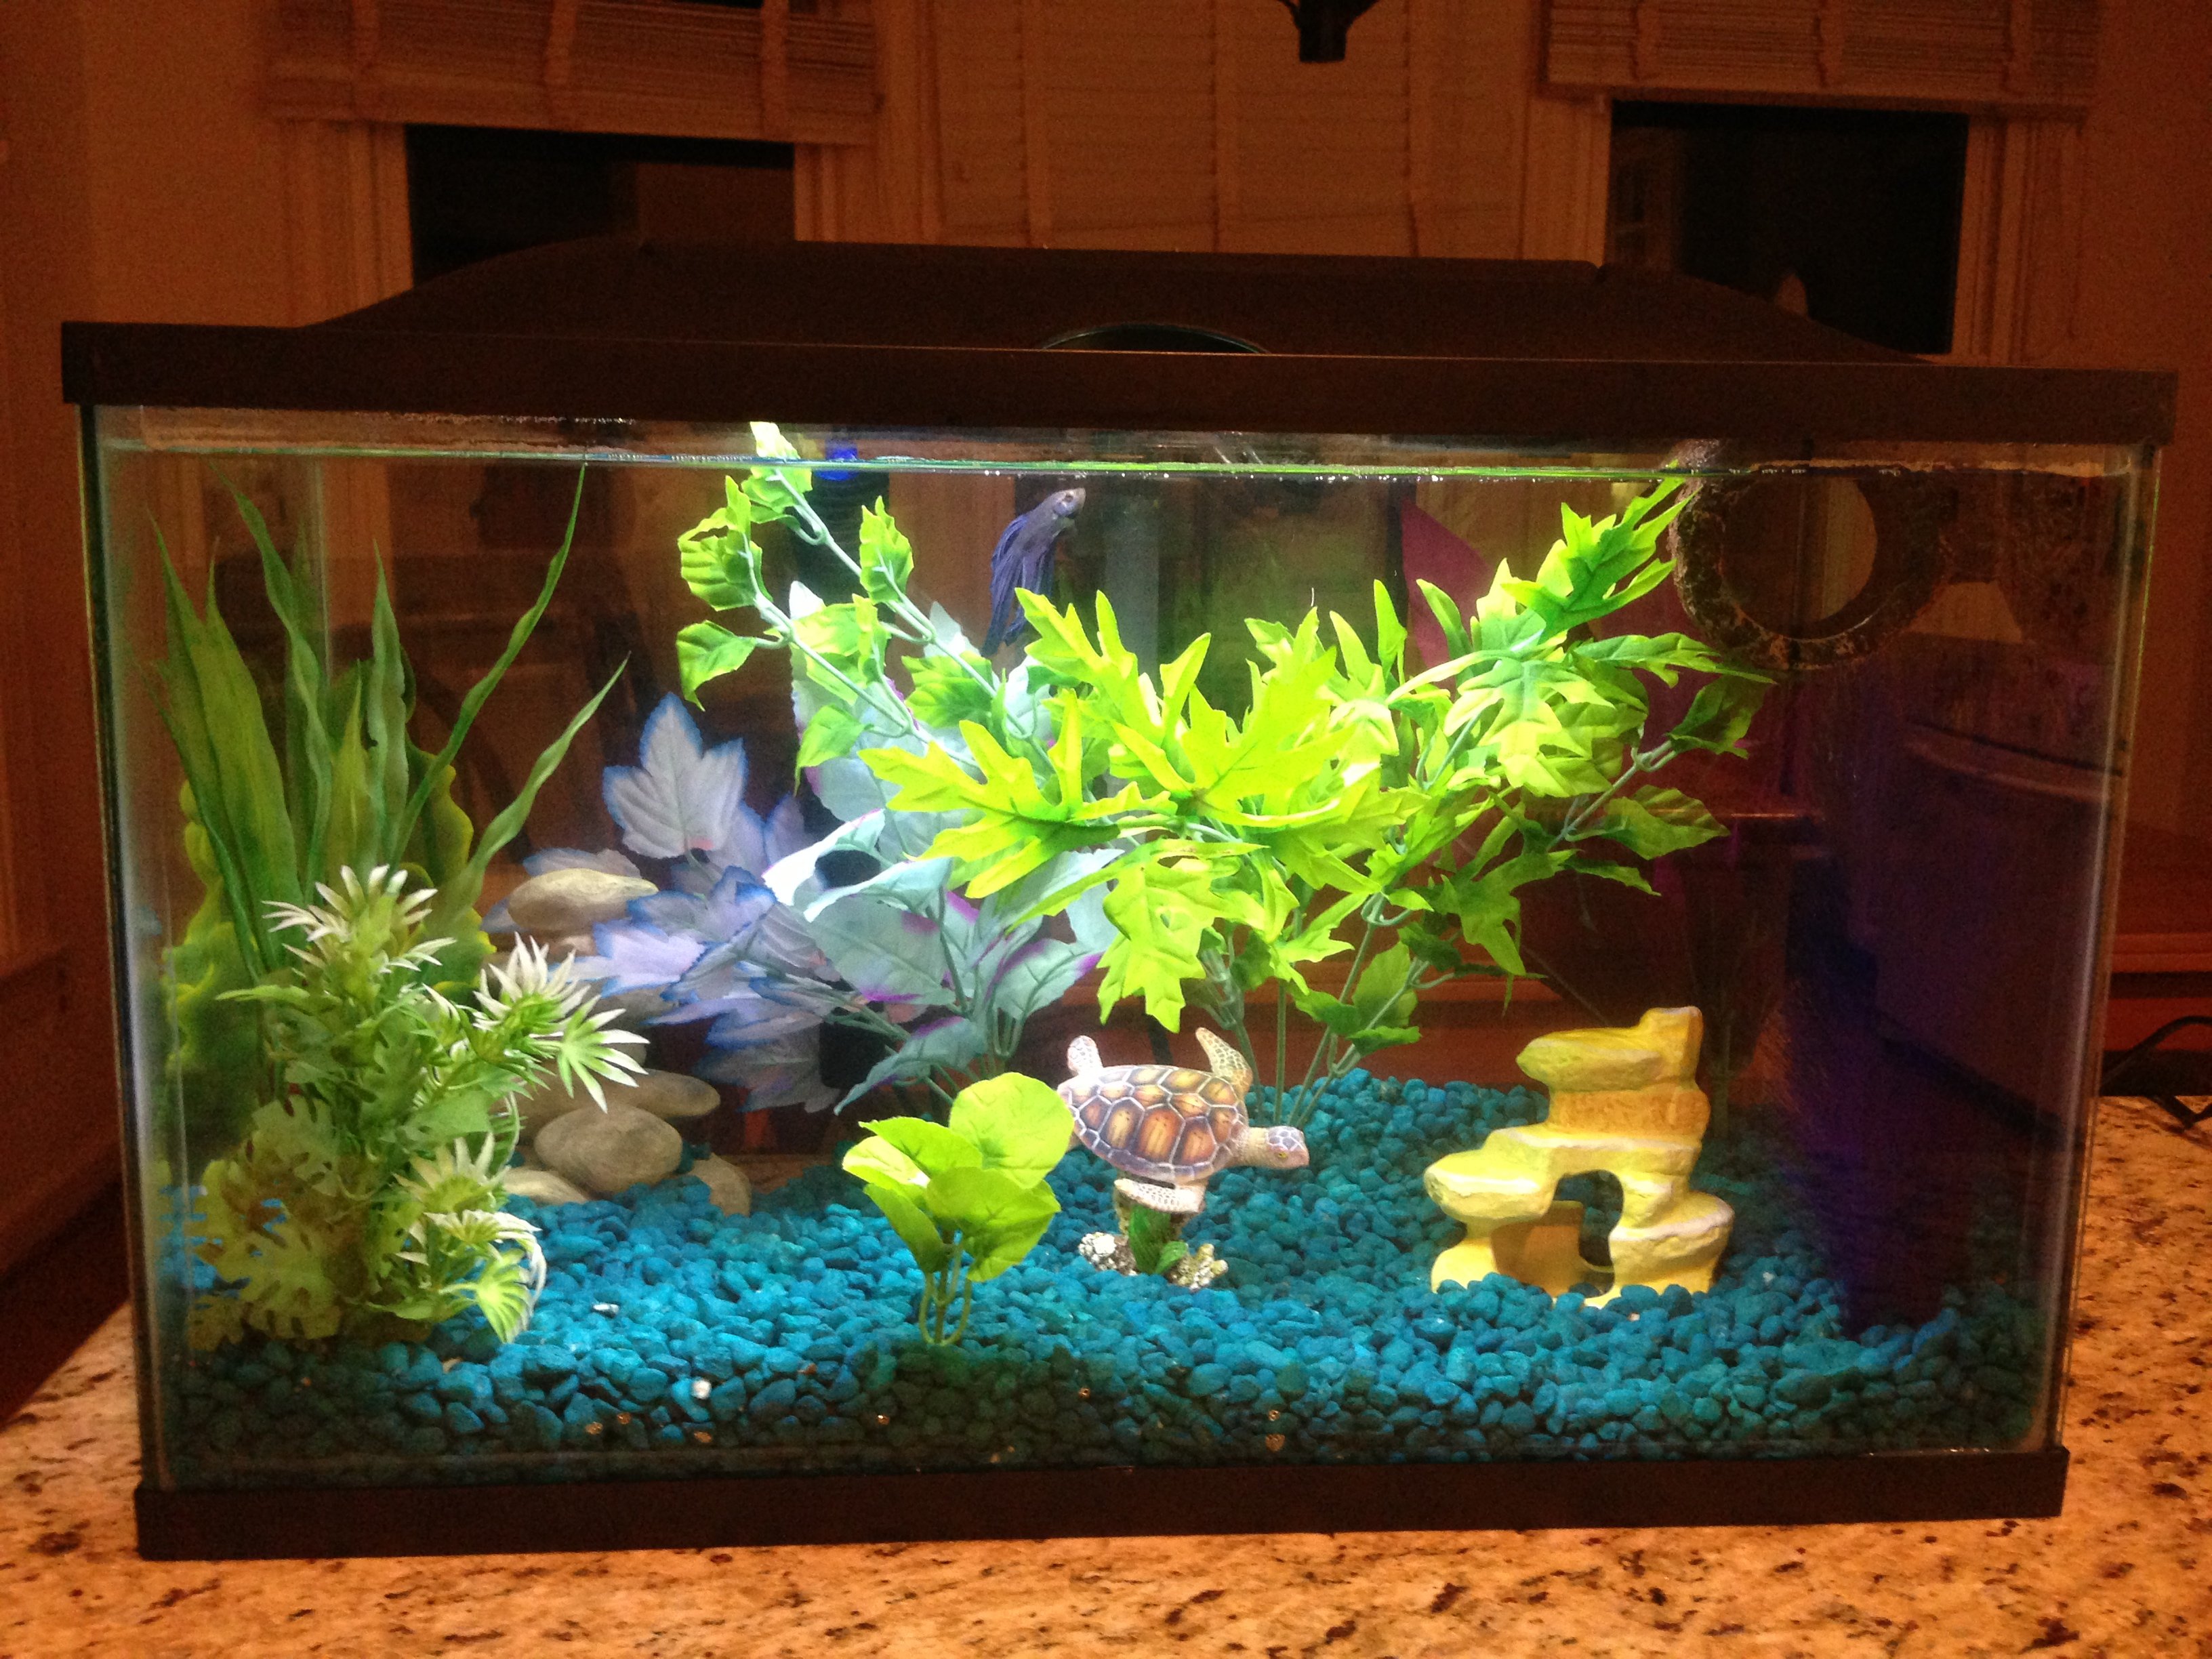 I have a new betta fish, about 3 months old. He is in a 10 ... 10 Gallon Home Aquariums